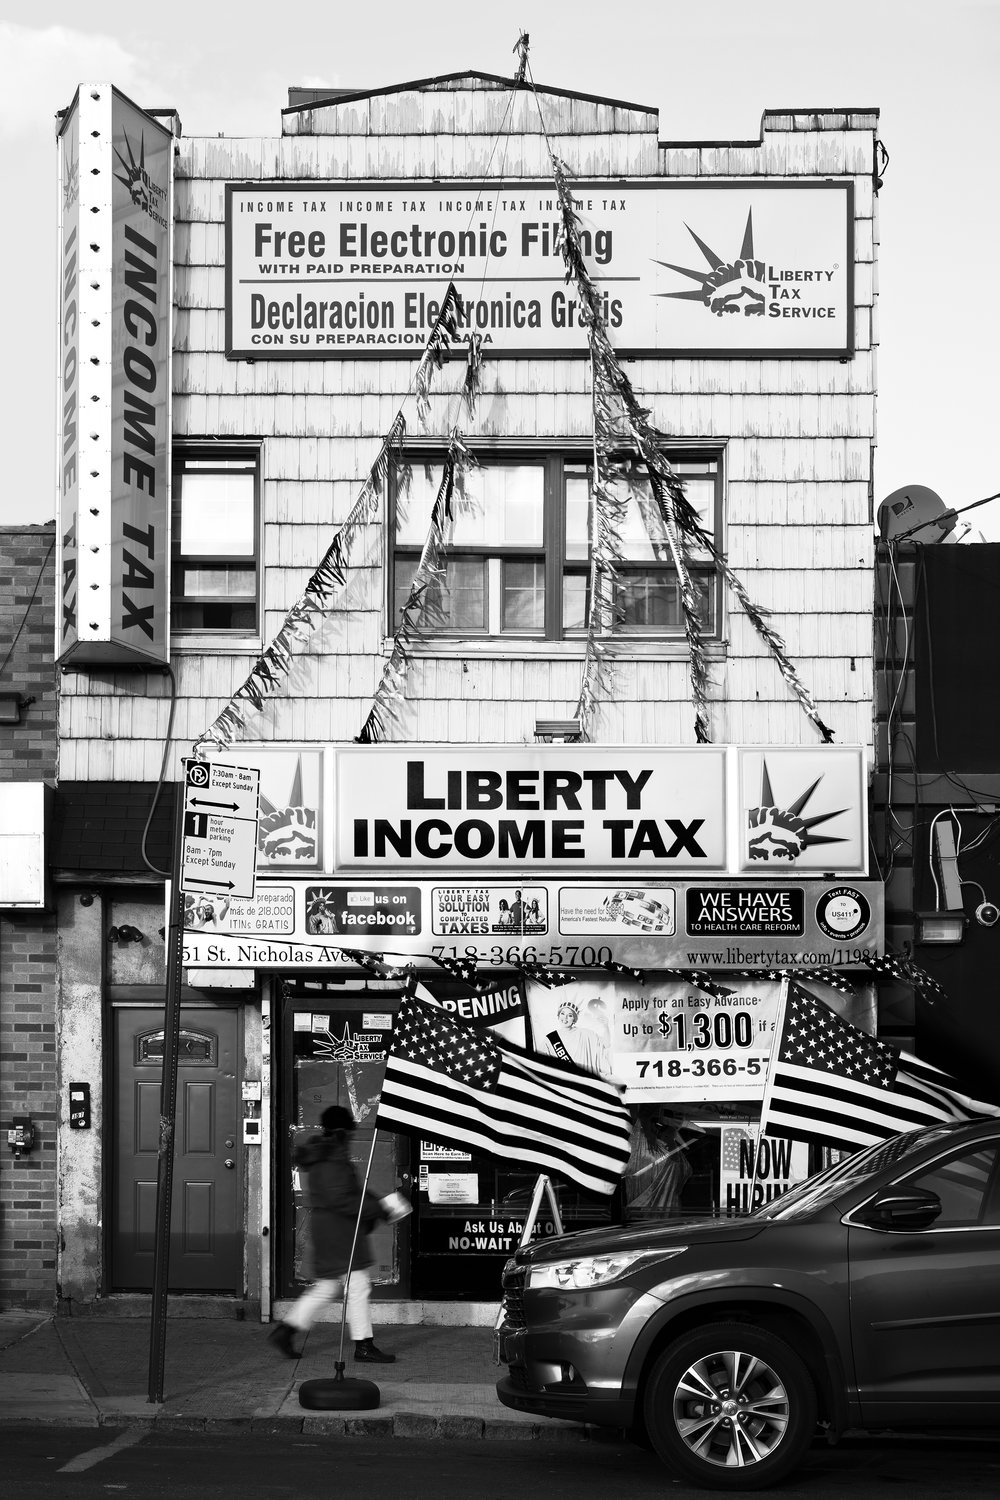 LibertyTax3170-2merged.jpg